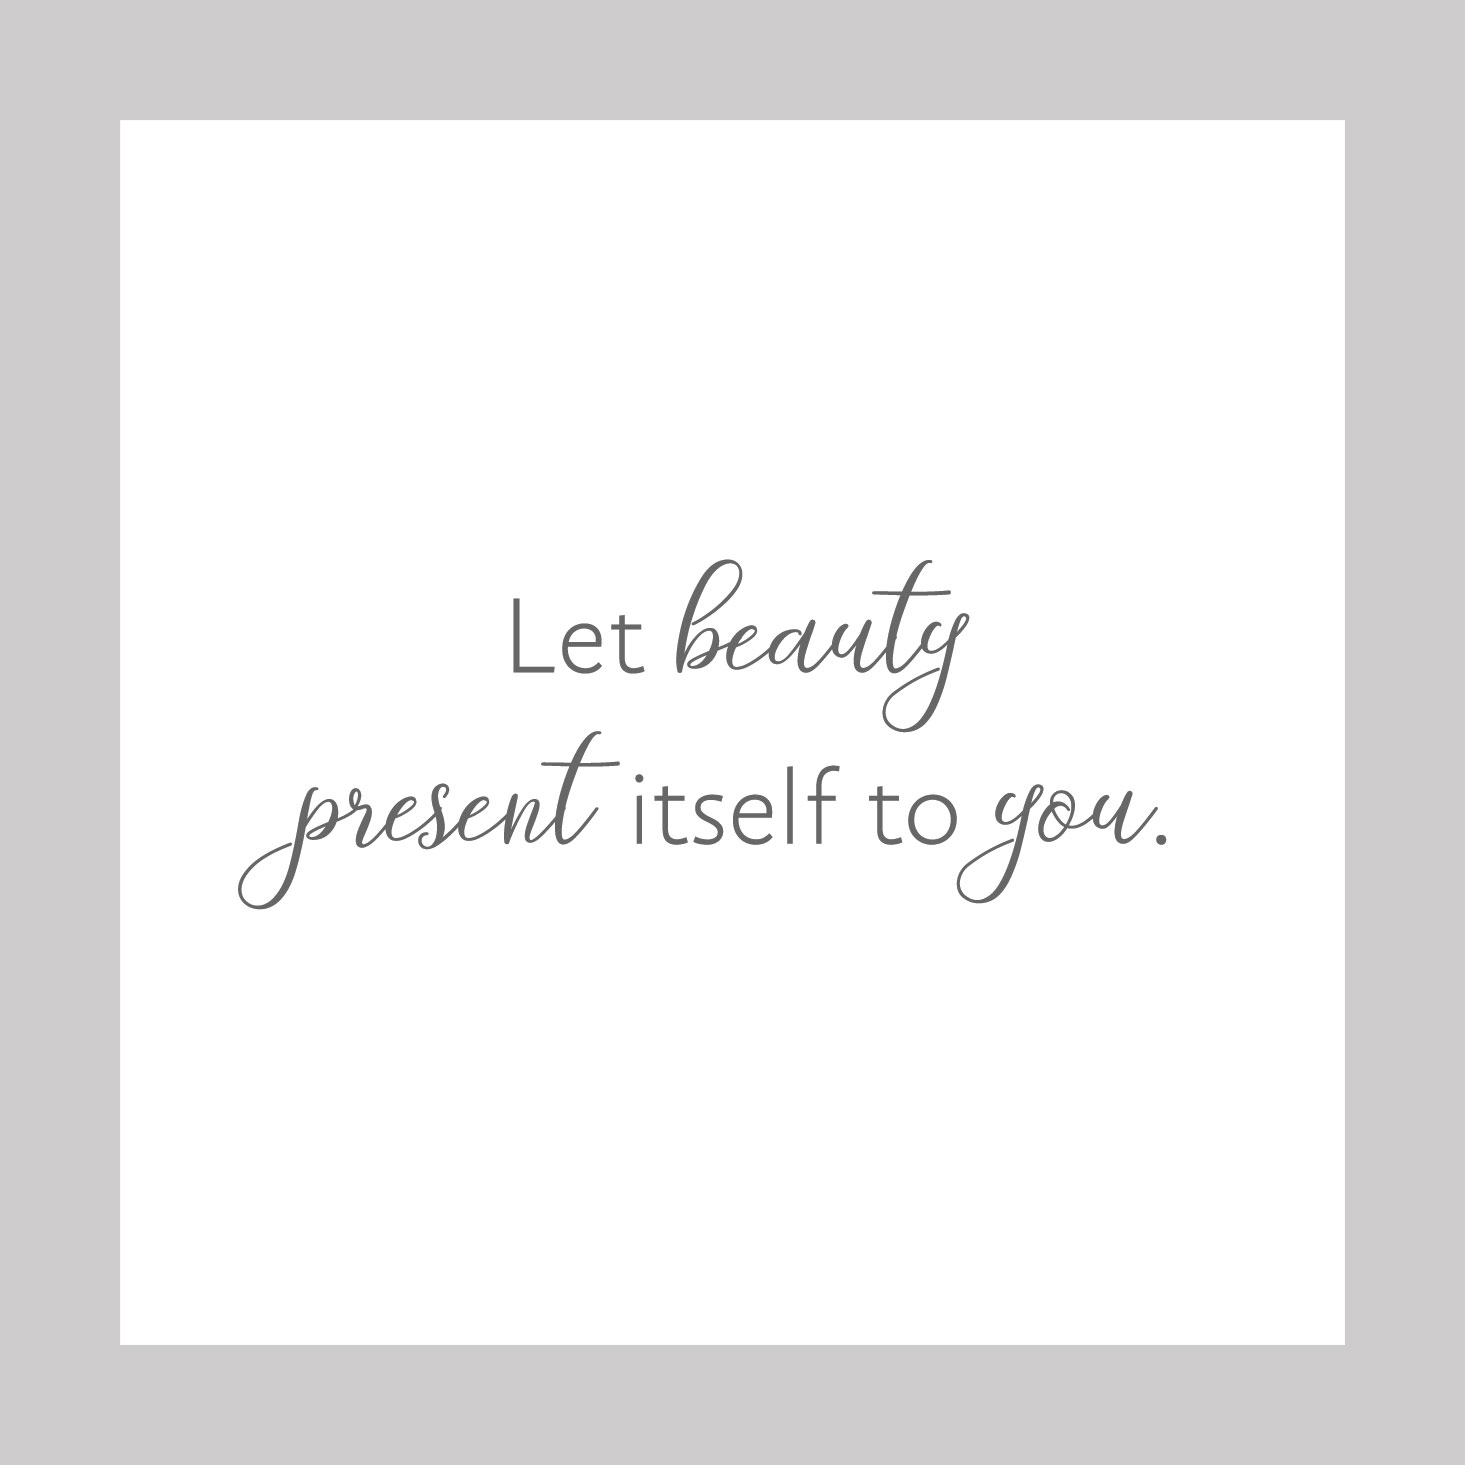 Let beauty present itself to you.